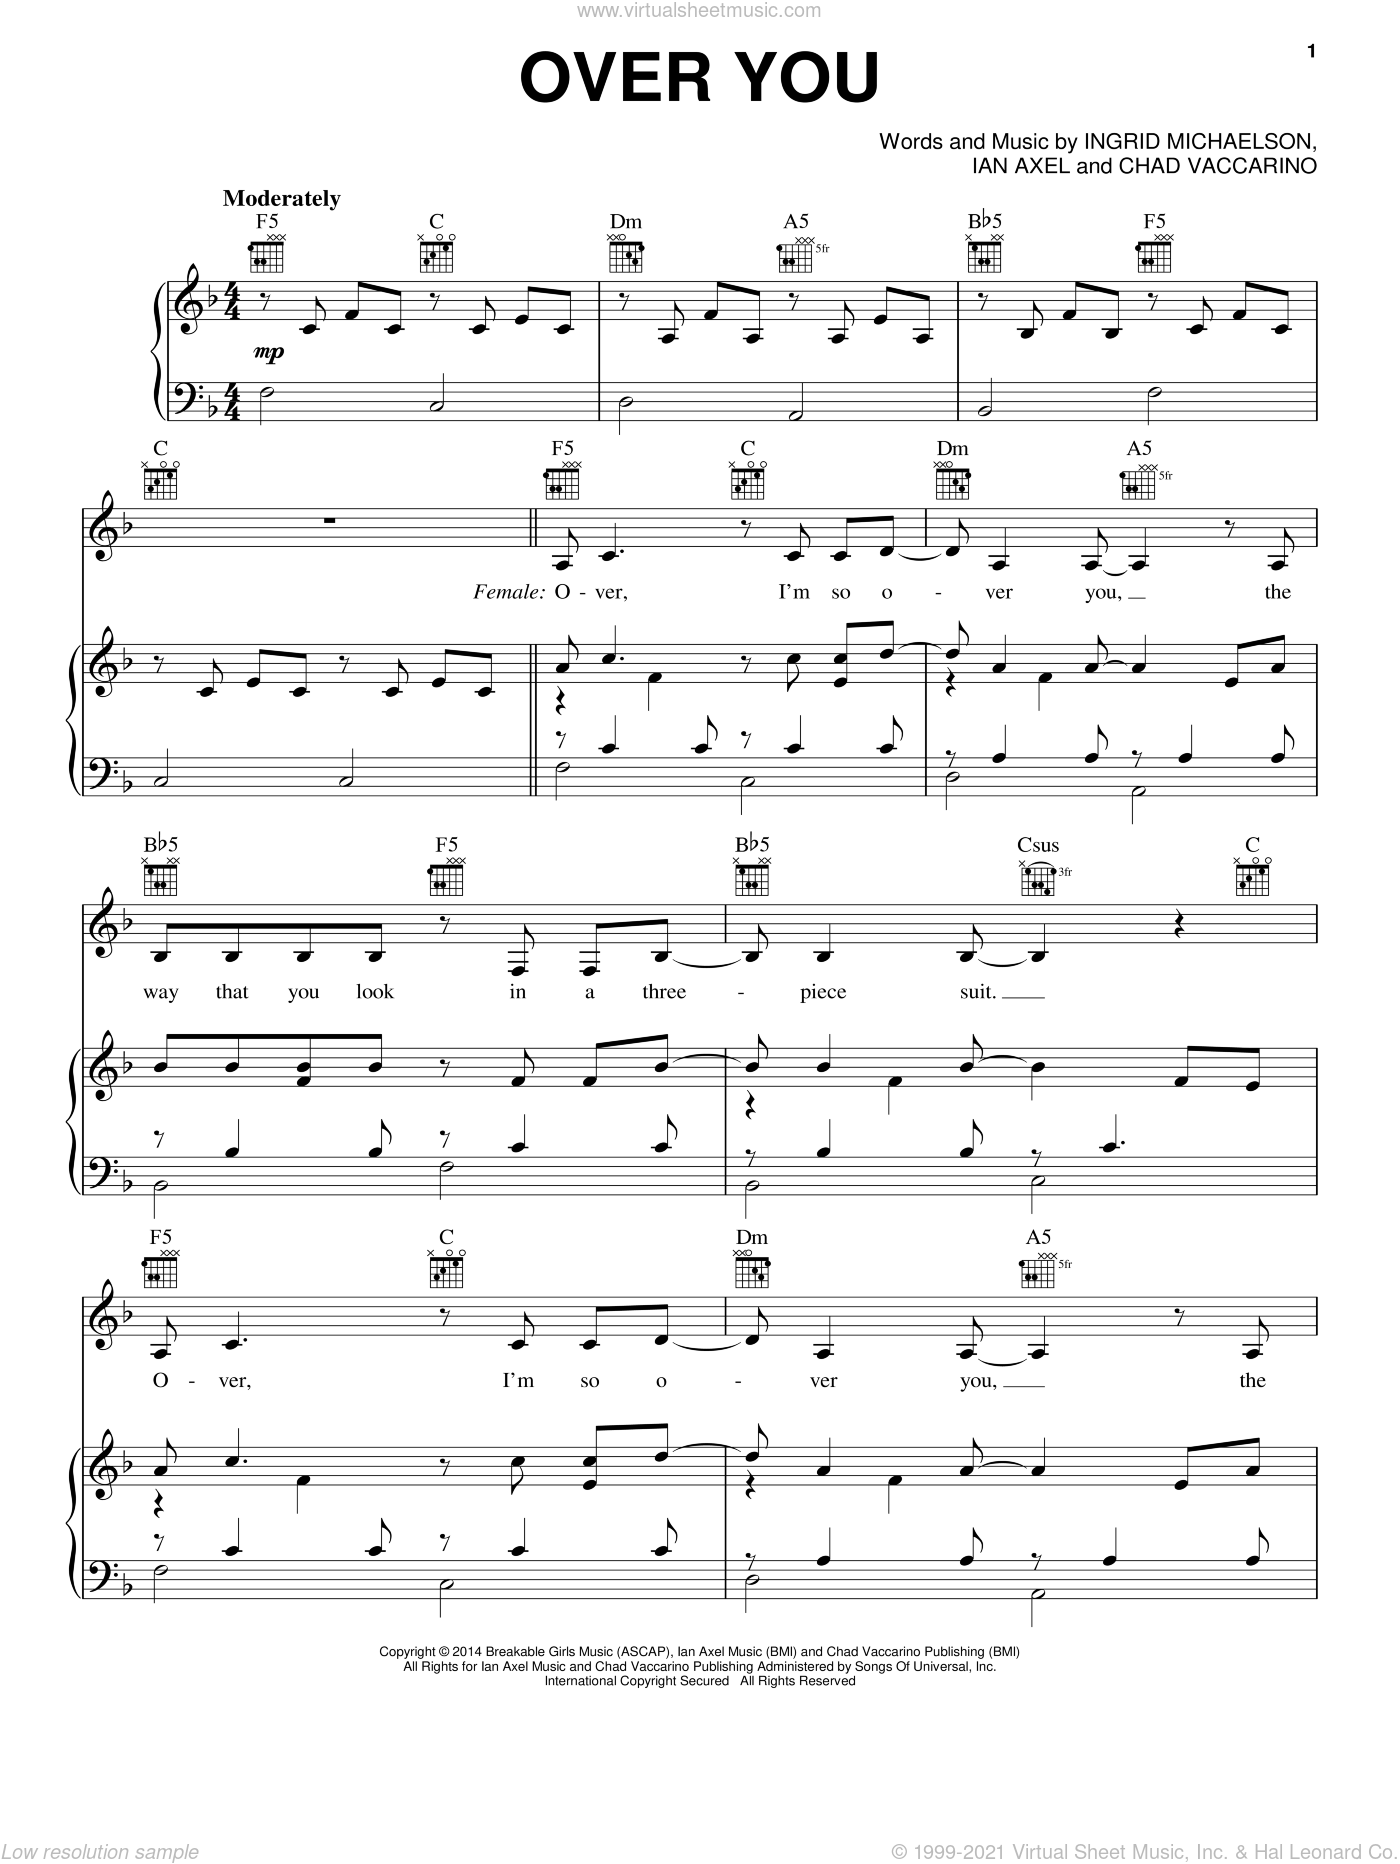 Over You sheet music for voice, piano or guitar by Ingrid Michaelson, Chad Vaccarino and Ian Axel, intermediate skill level